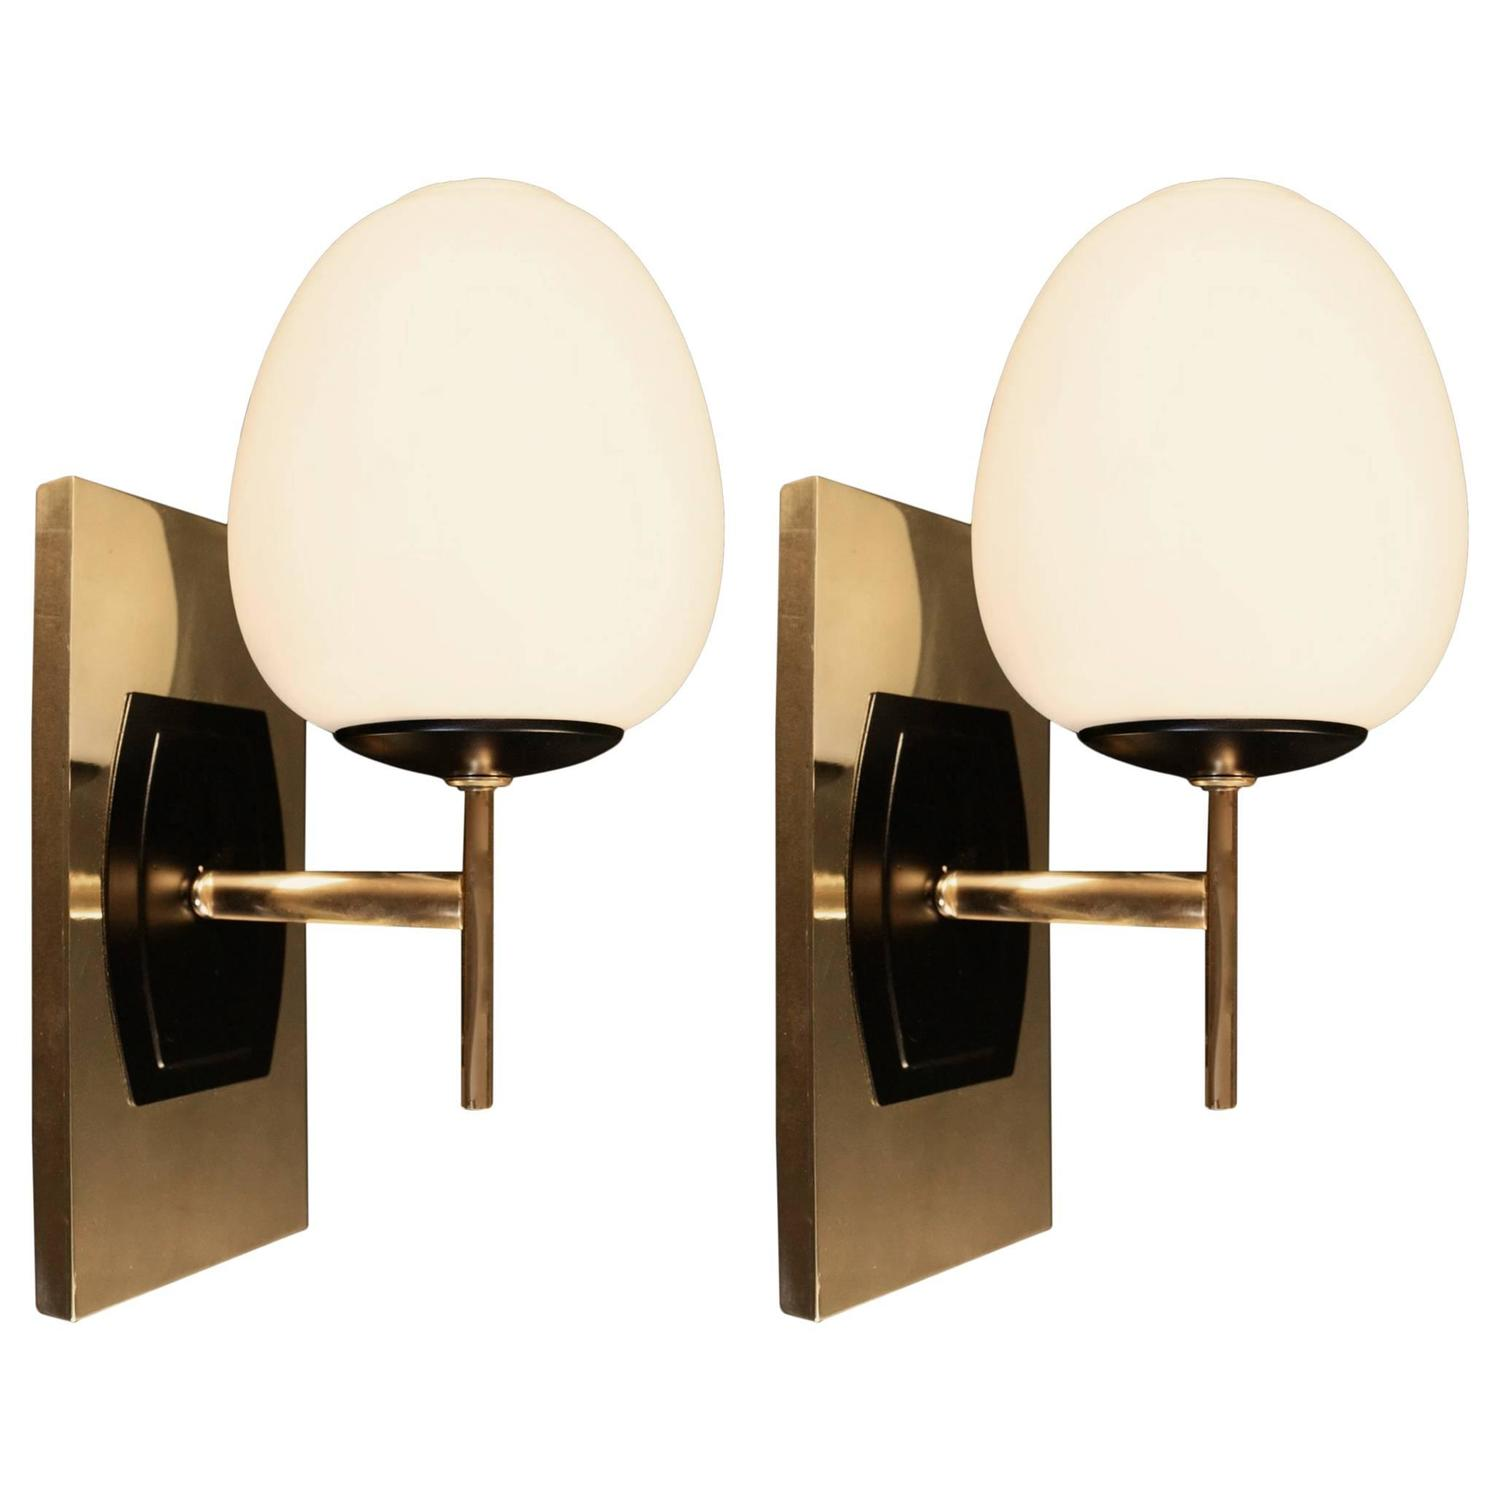 Pair Of 1950s Sconces By Maison Arlus At 1stdibs